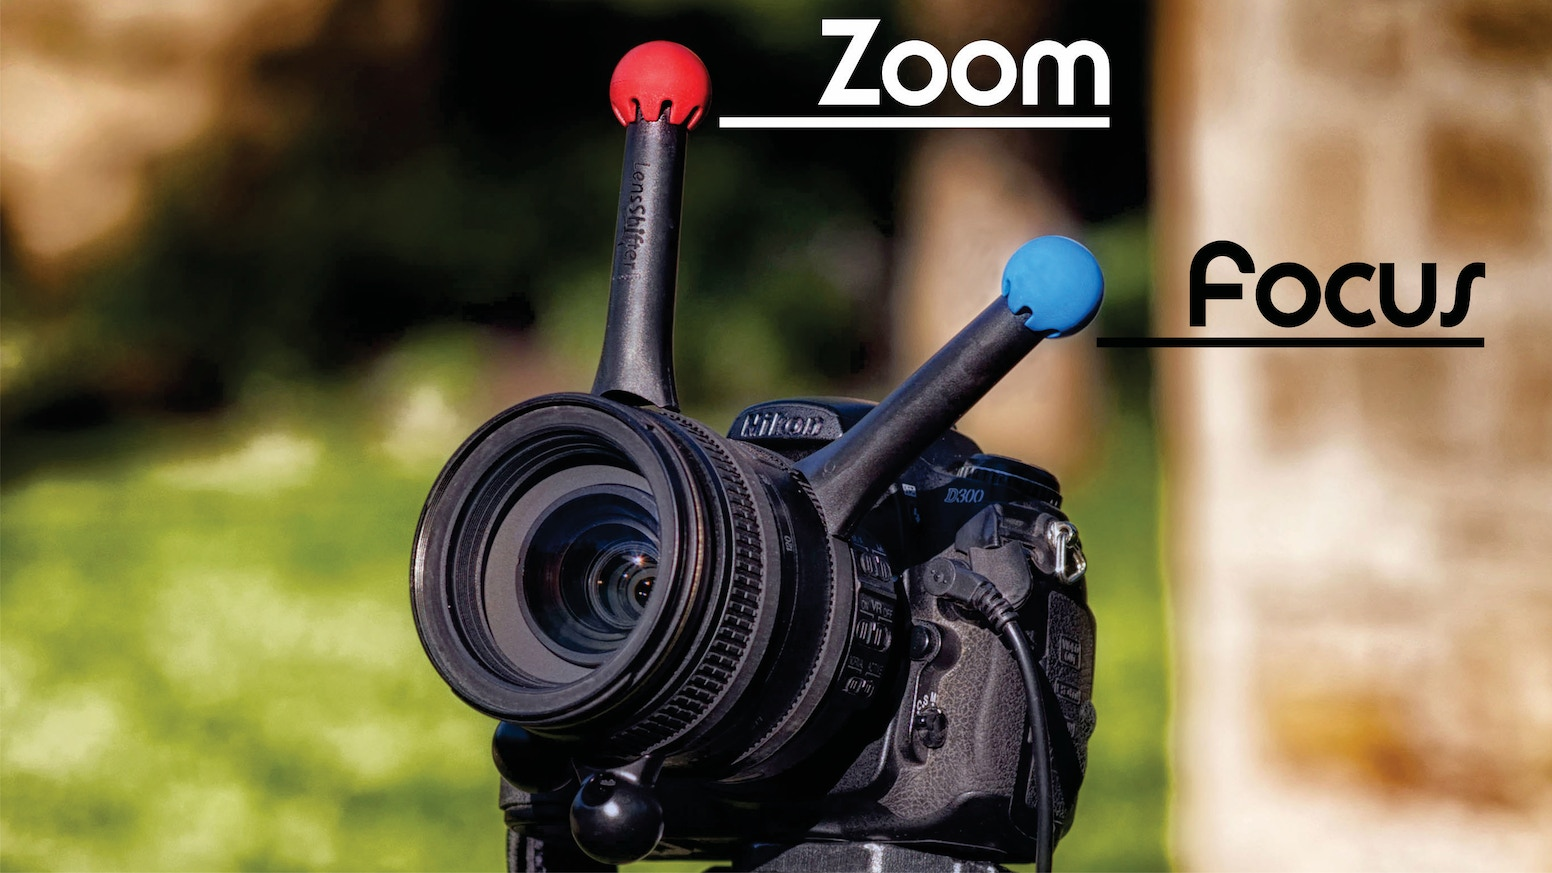 Get precise focus & zoom control with LensShifter's camera lens grip! Perfect for photography and video. New colors match your gear.